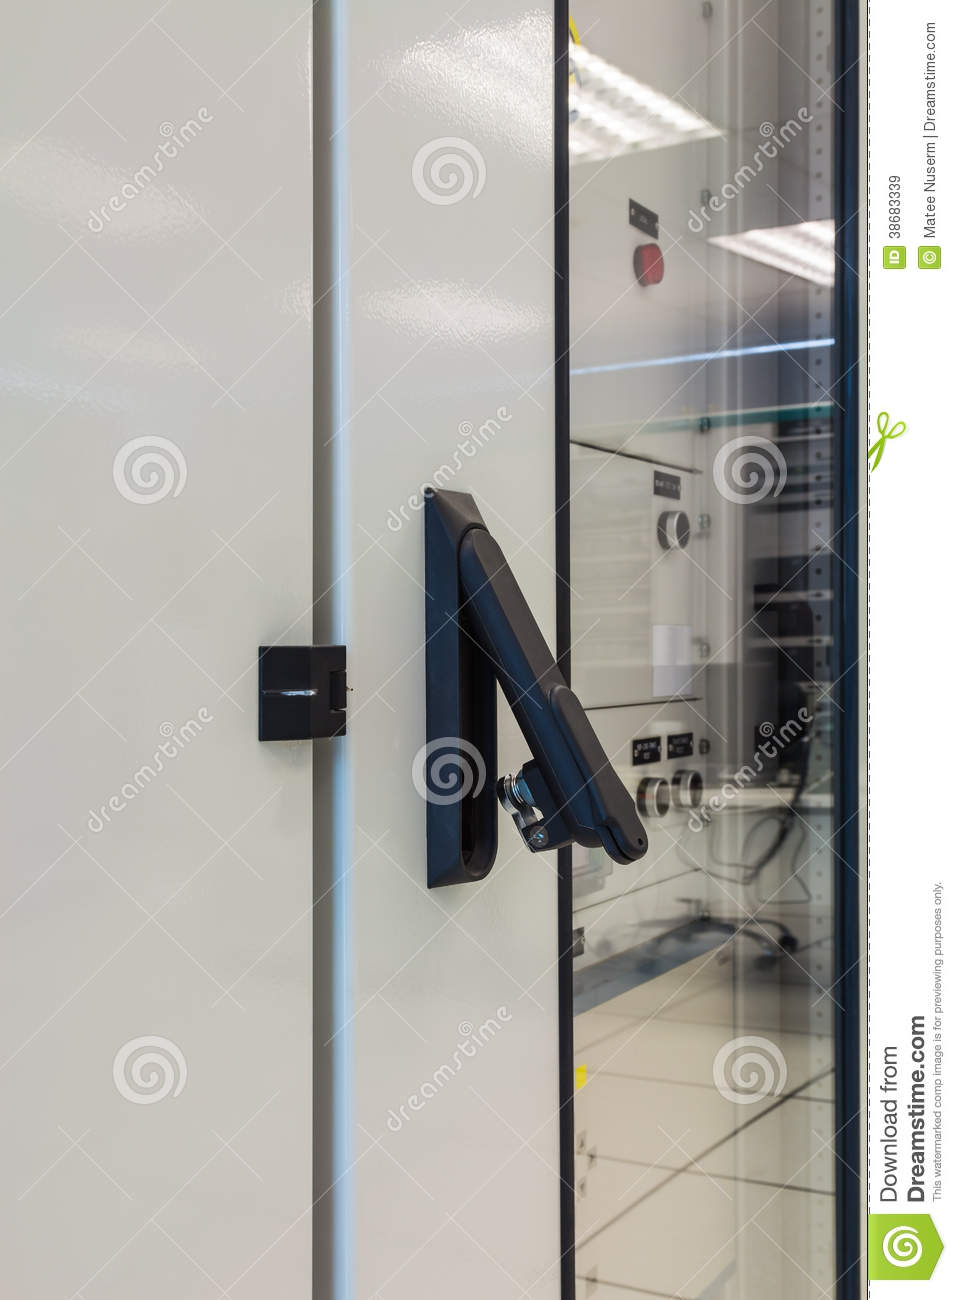 Cabinet latch stock image  Image of latch, industry, safety